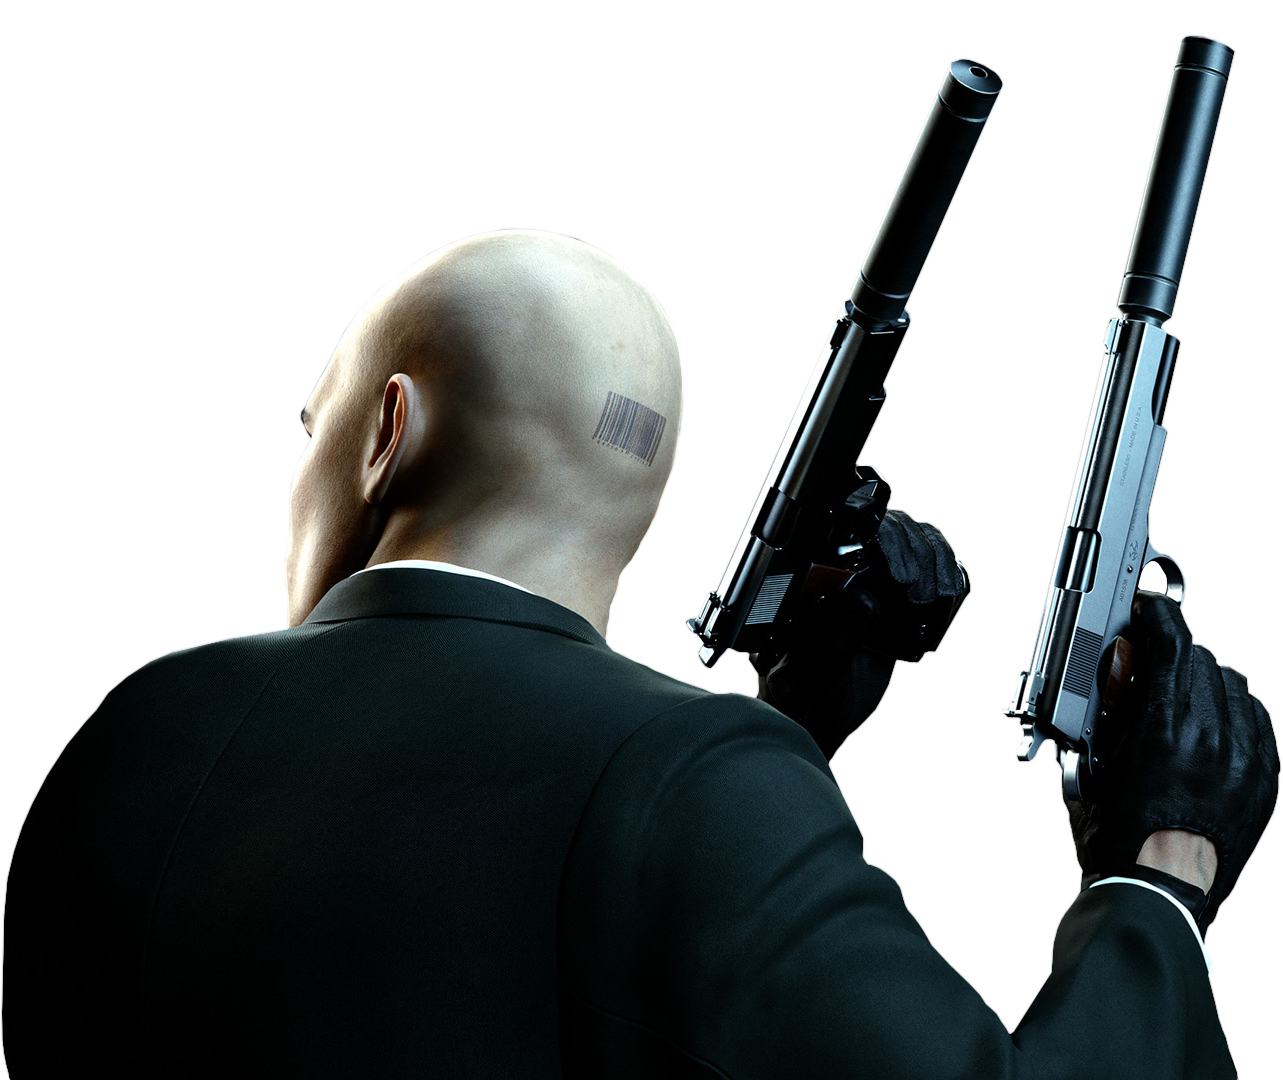 Hitman Png Picture Png Image - Hitman, Transparent background PNG HD thumbnail